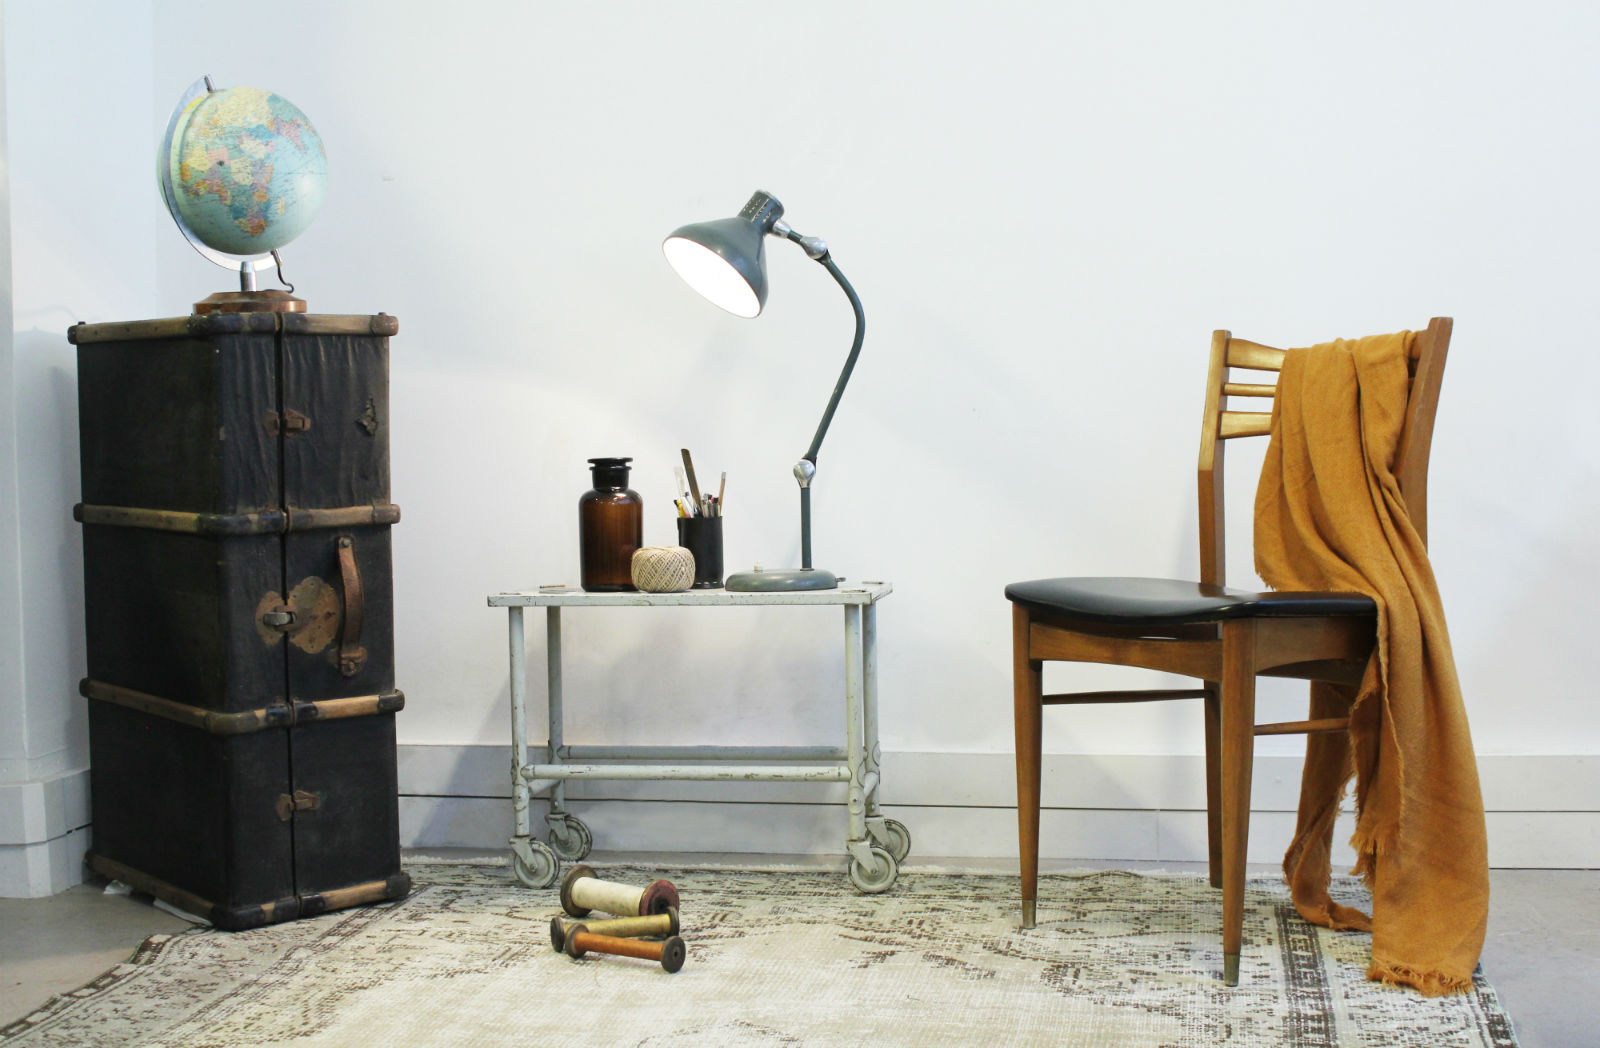 Hip Paris blog. November Events. Brocante Lab. Simple decor yet full of character.